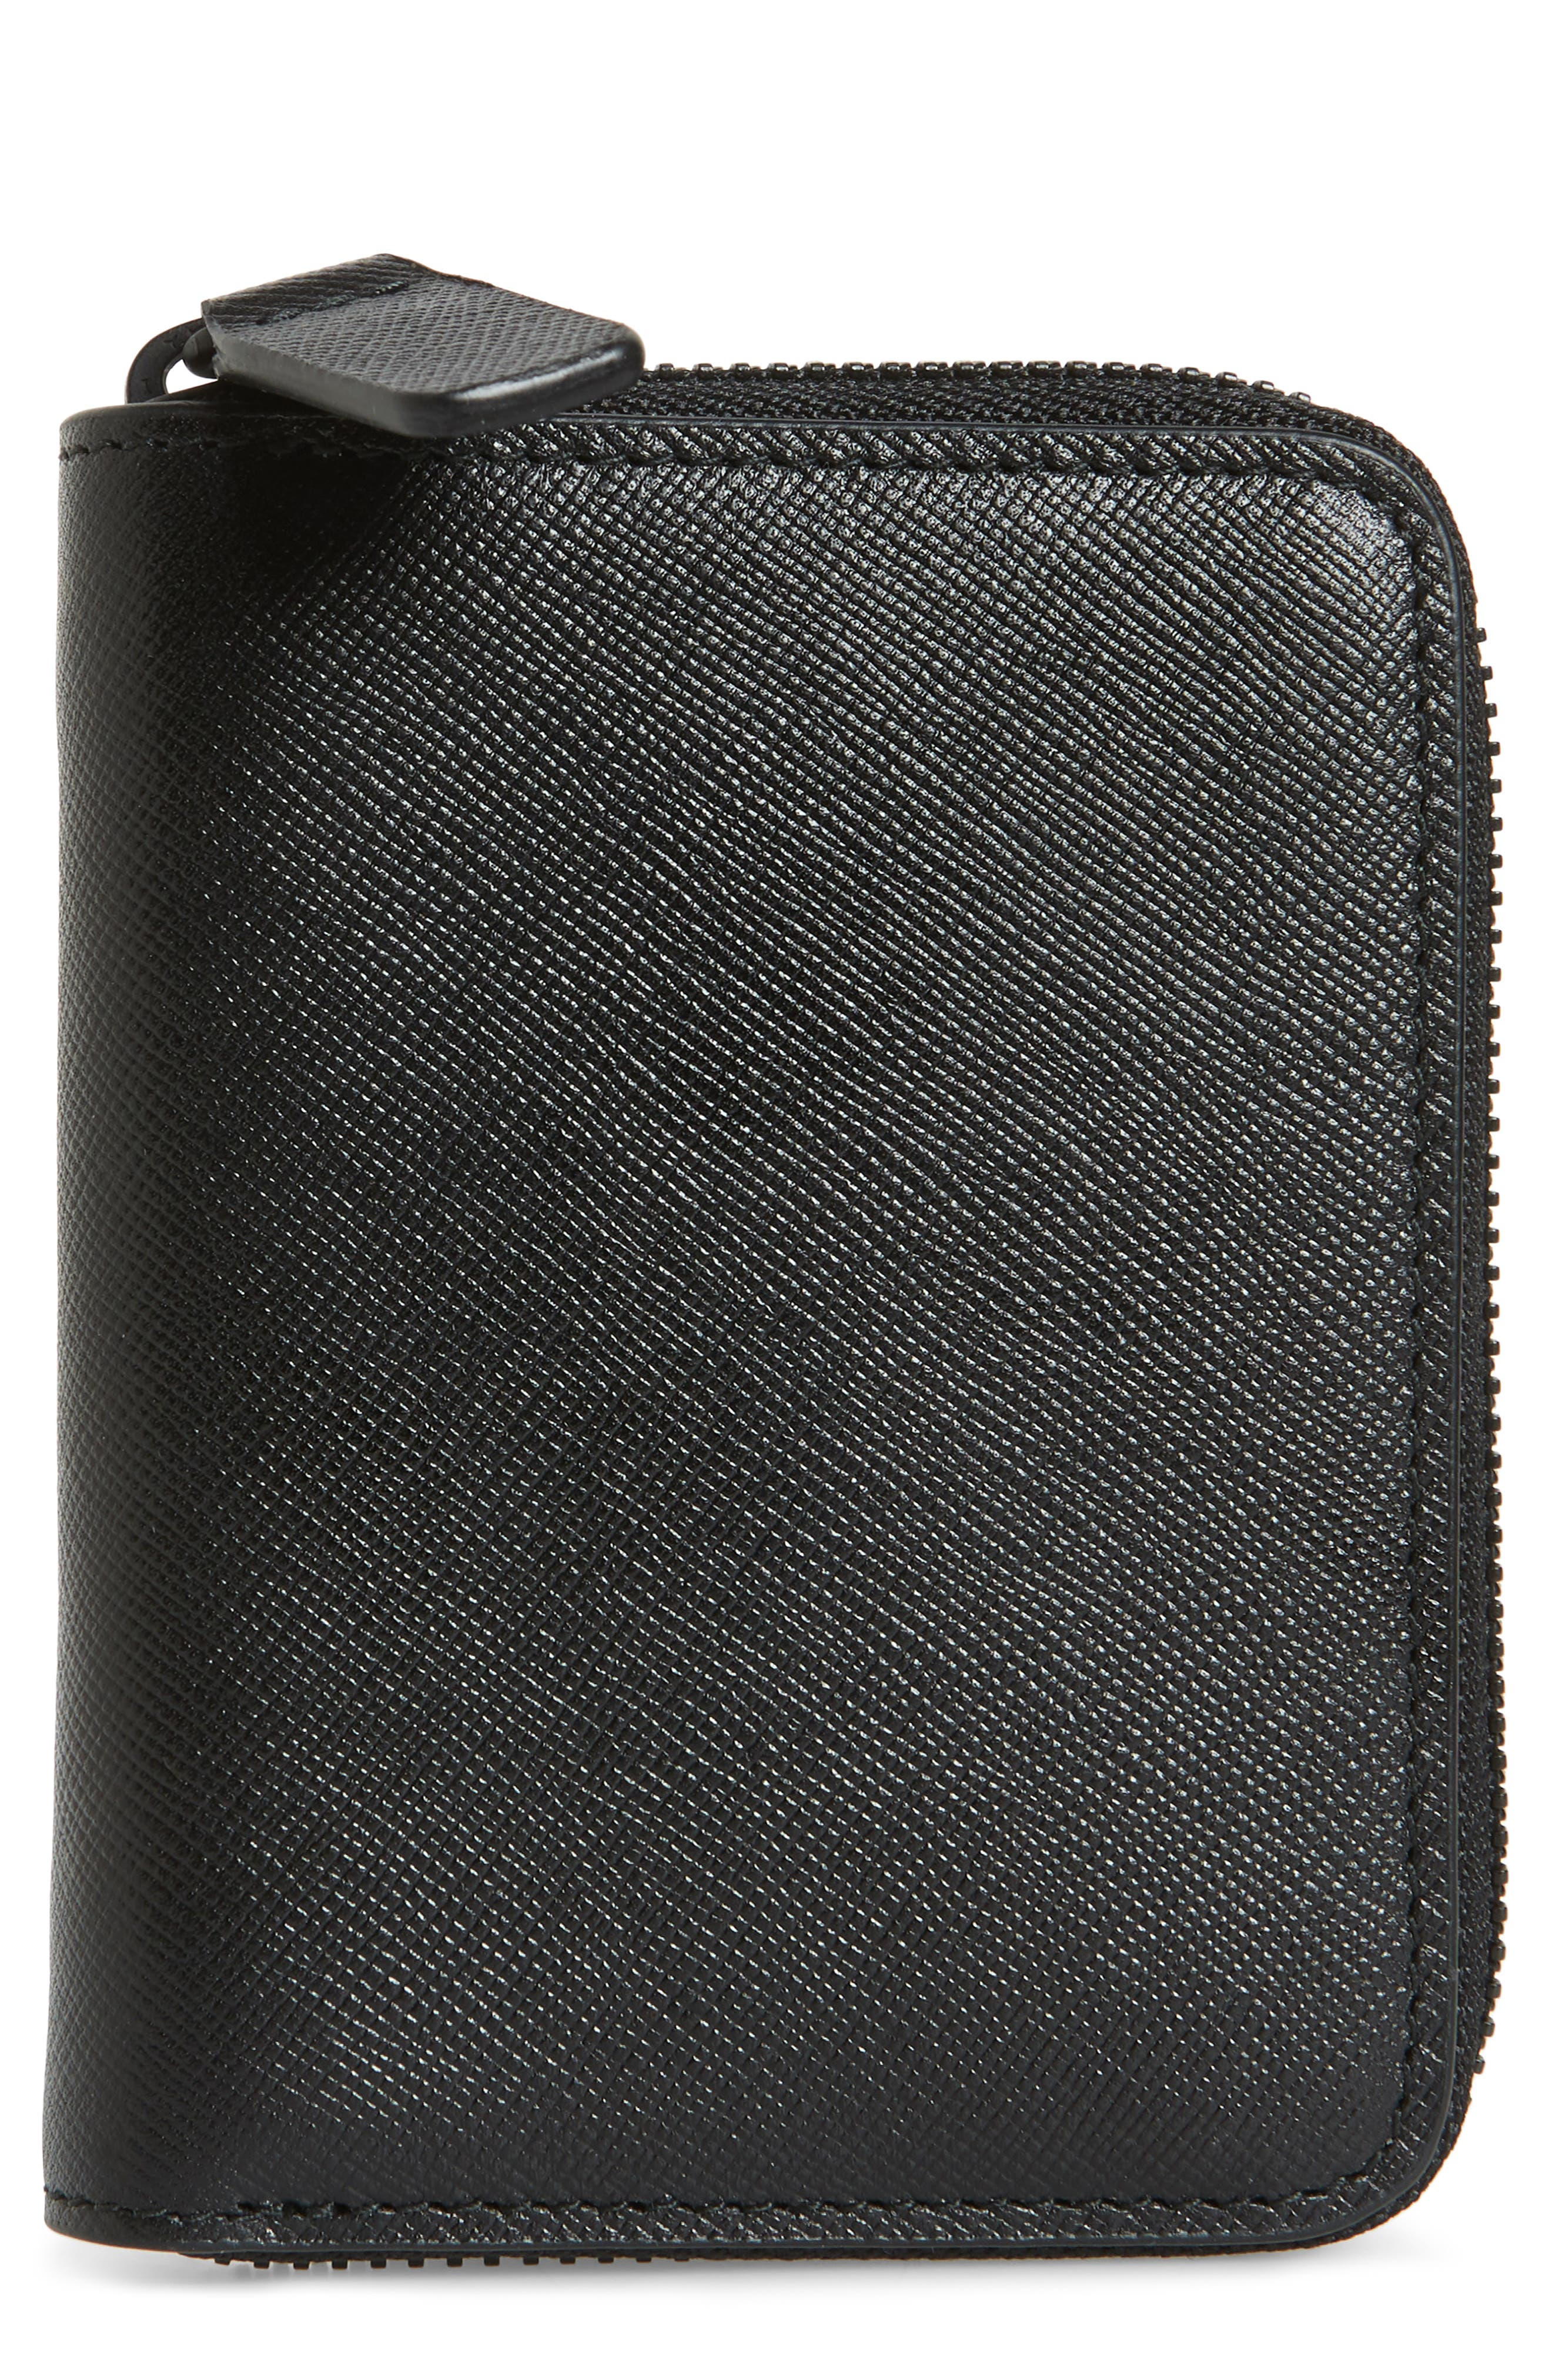 COMMON PROJECTS, Saffiano Zip Coin Case, Main thumbnail 1, color, 001